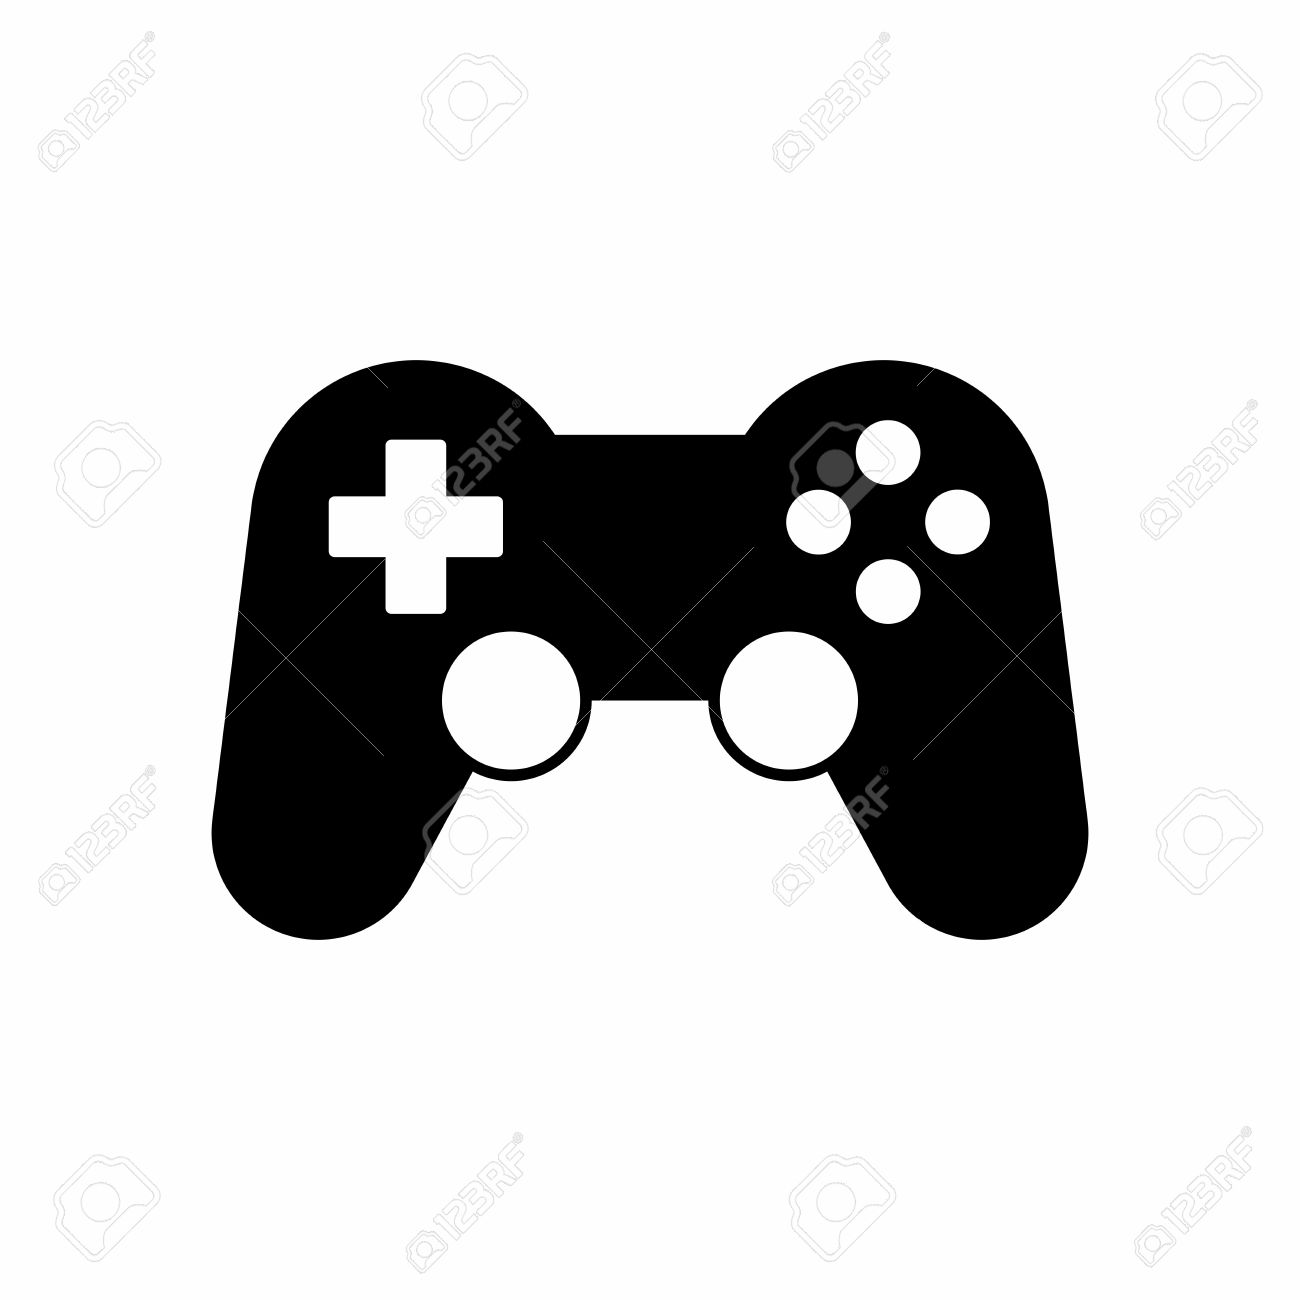 gamepad or game controller icon vector design isolated on white rh 123rf com game controller icon vector game controller vector free